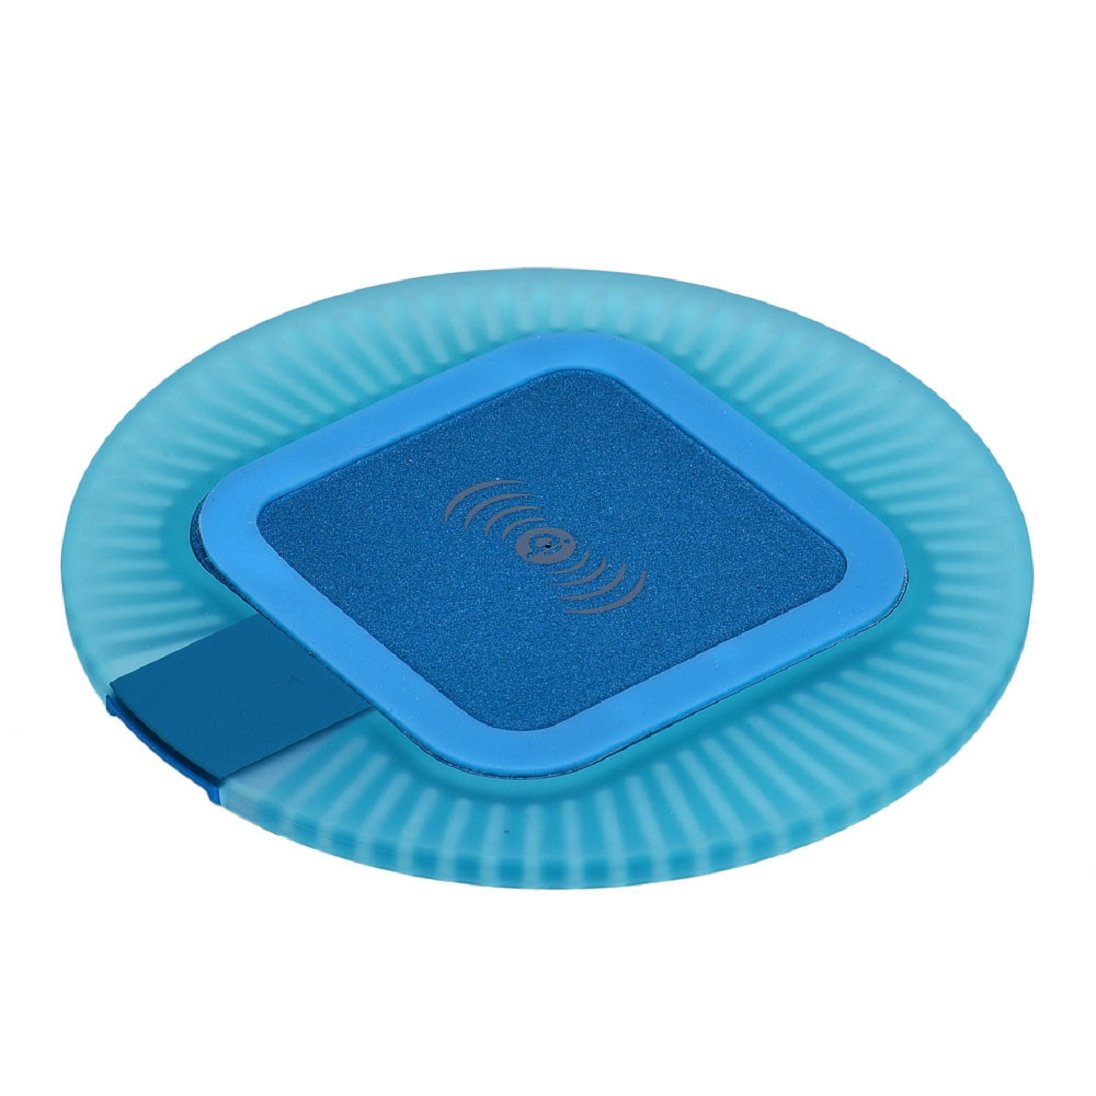 AutumnFall Qi Wireless Charger Charging Pad For Samsung Galaxy S6 / S6 Edge (Blue)